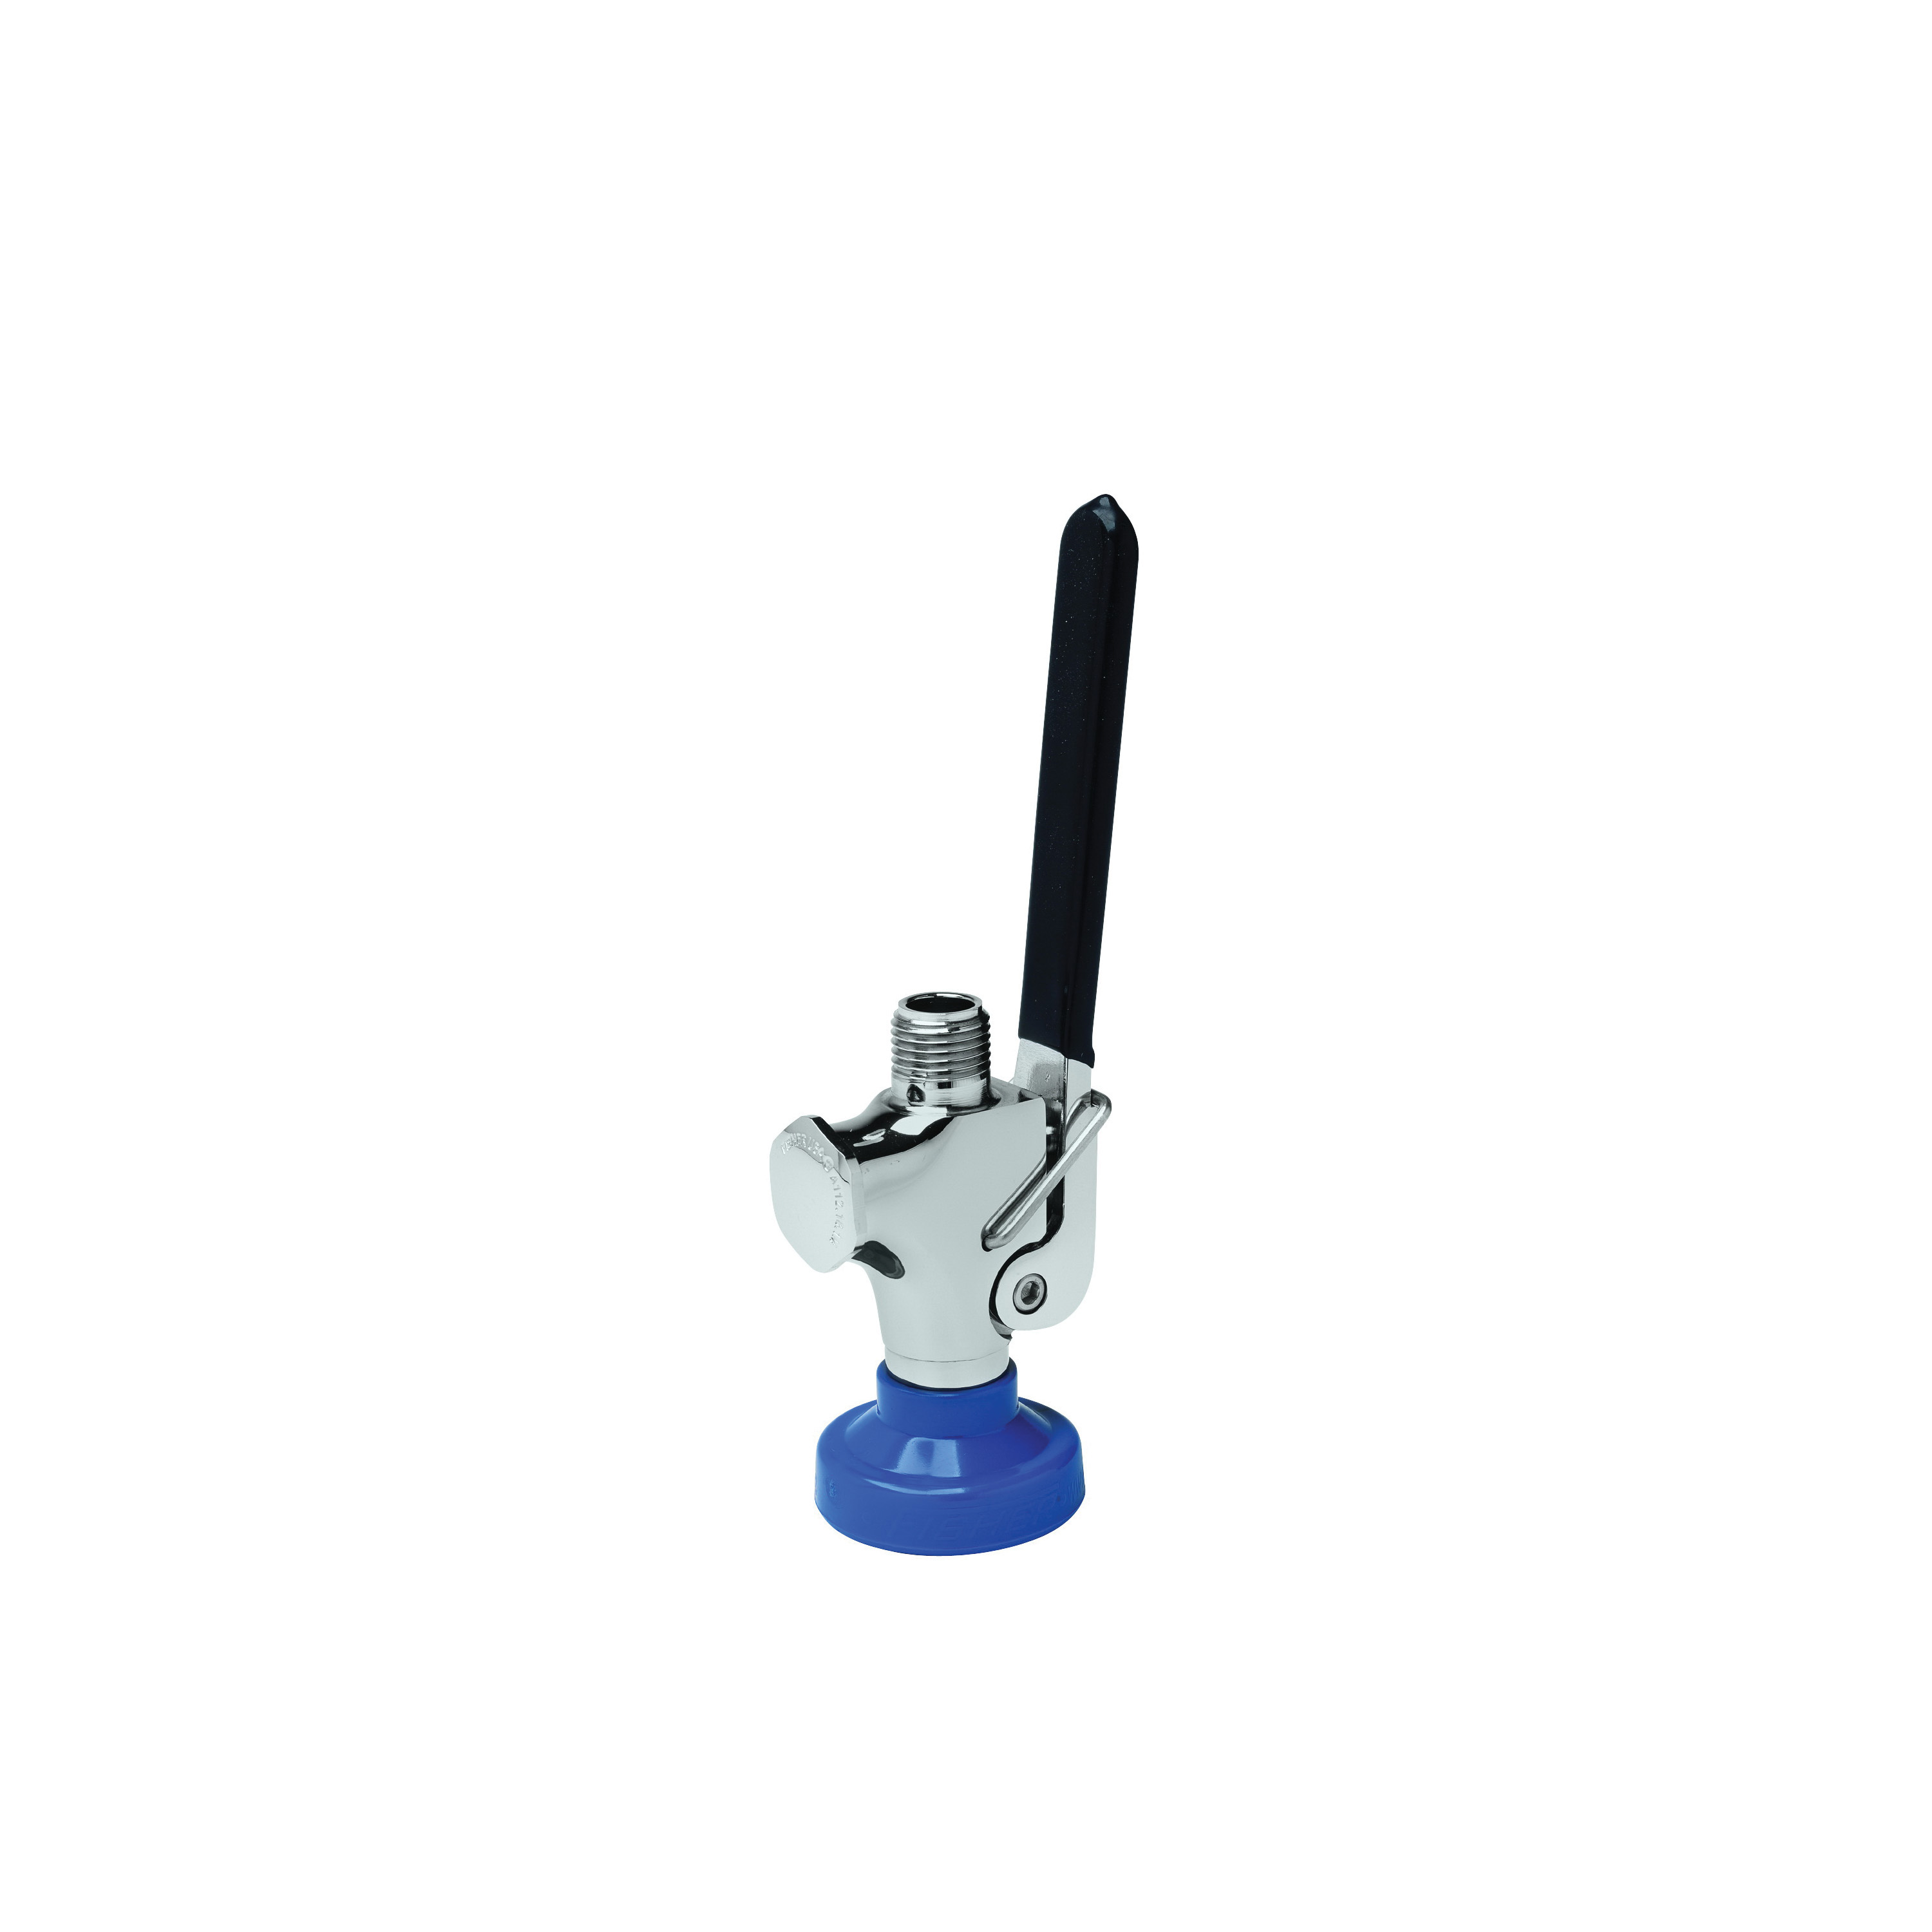 Fisher Ultra™ Spray 71307 Spray Valve, 3/4-14 UNS, 60 psi, Stainless Steel, Long Squeeze Lever Handle, Commercial